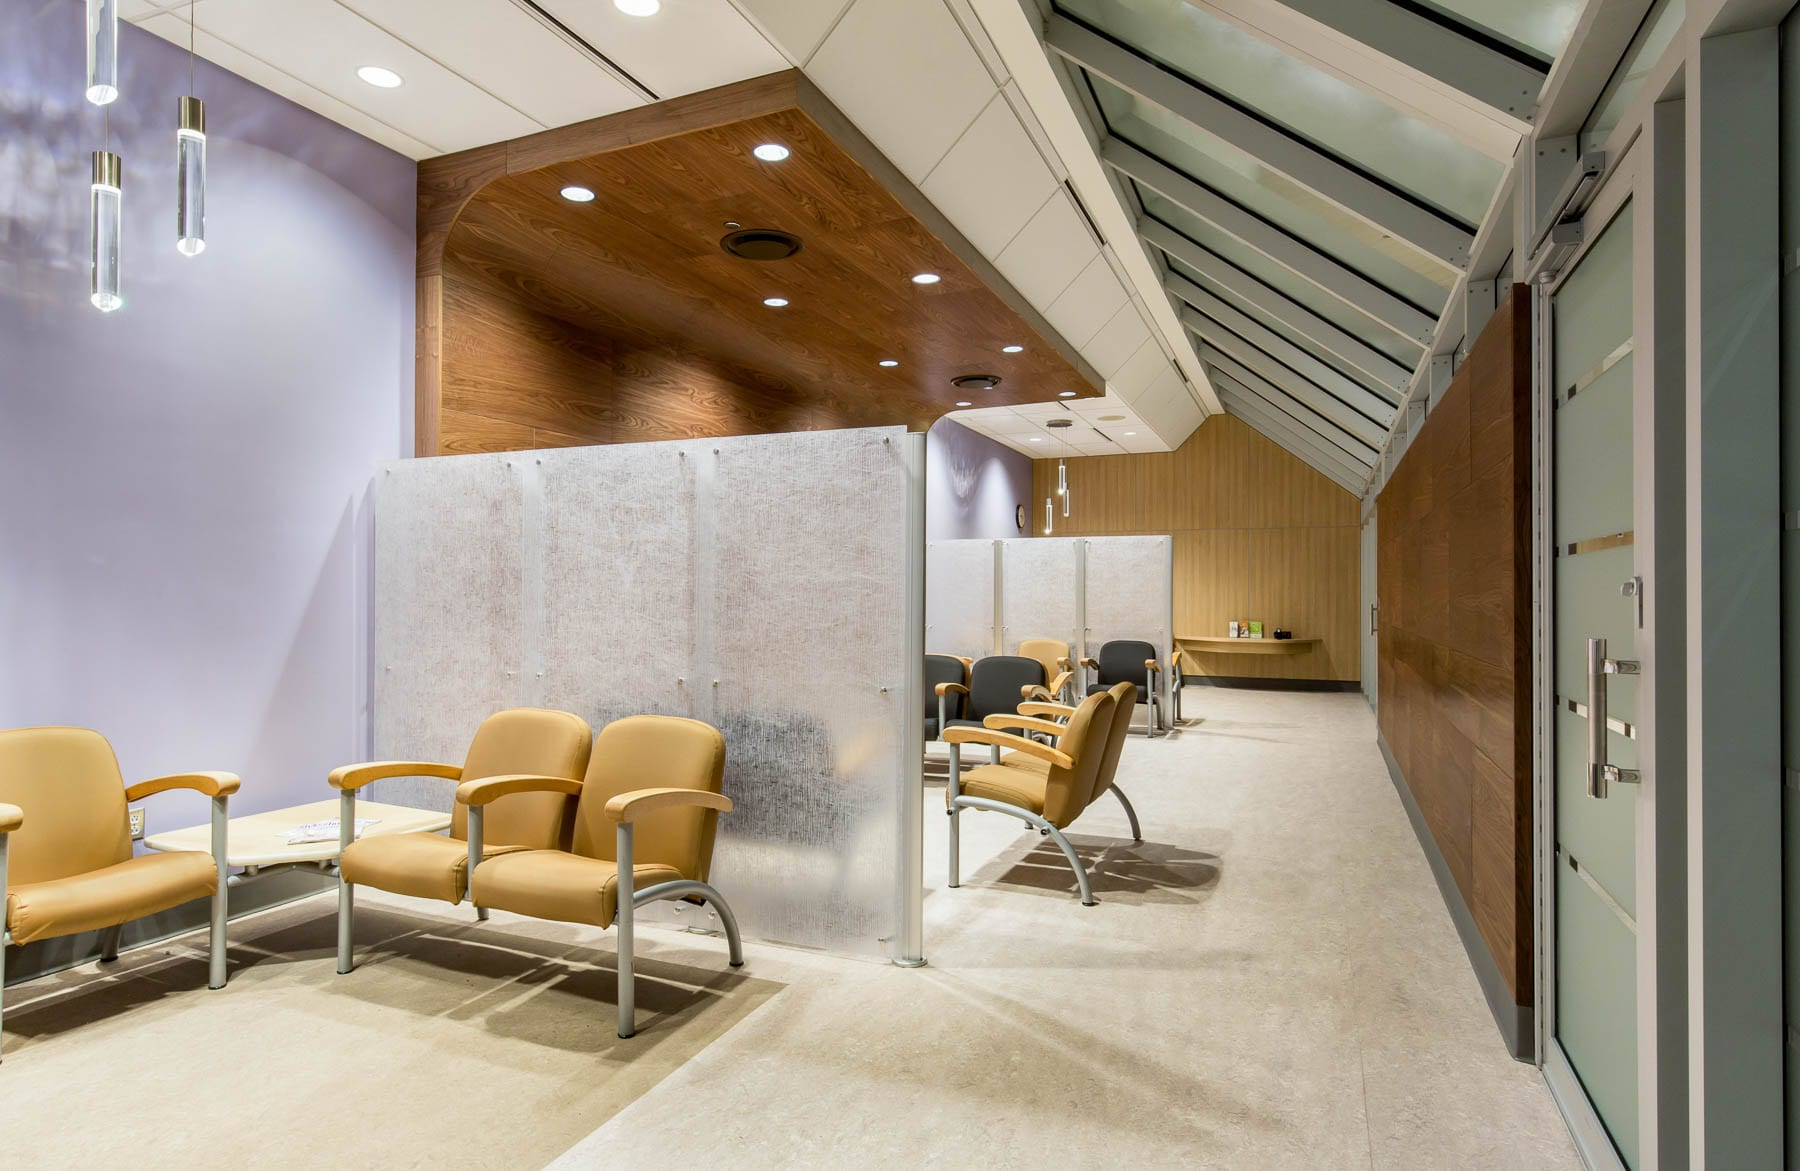 Vancouver General Hospital – Hybrid OR seating area